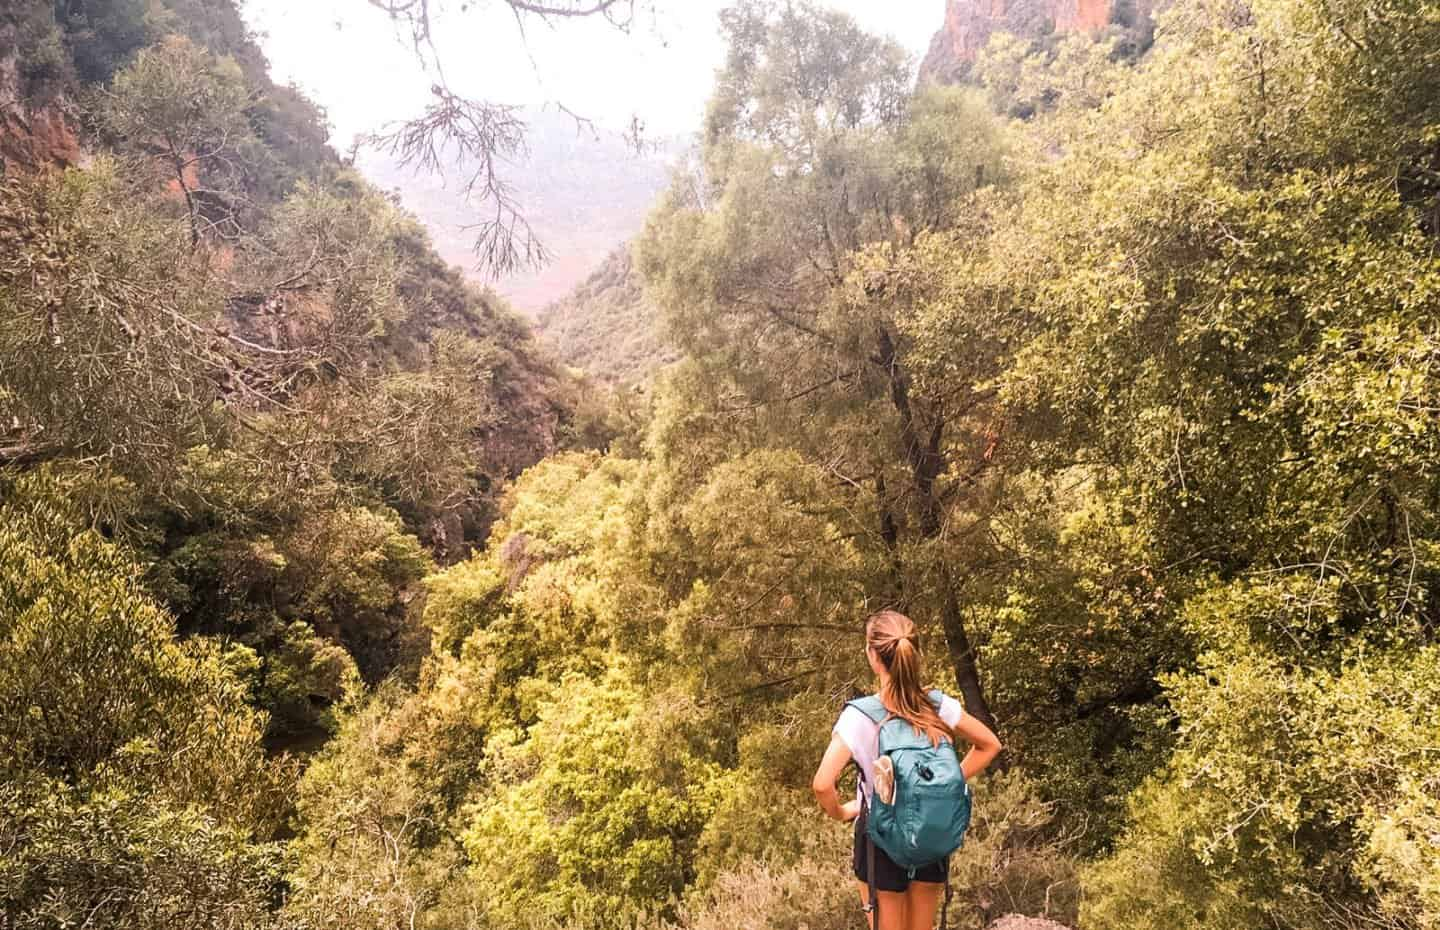 hiking in the Rif Mountains near Chefchaouen